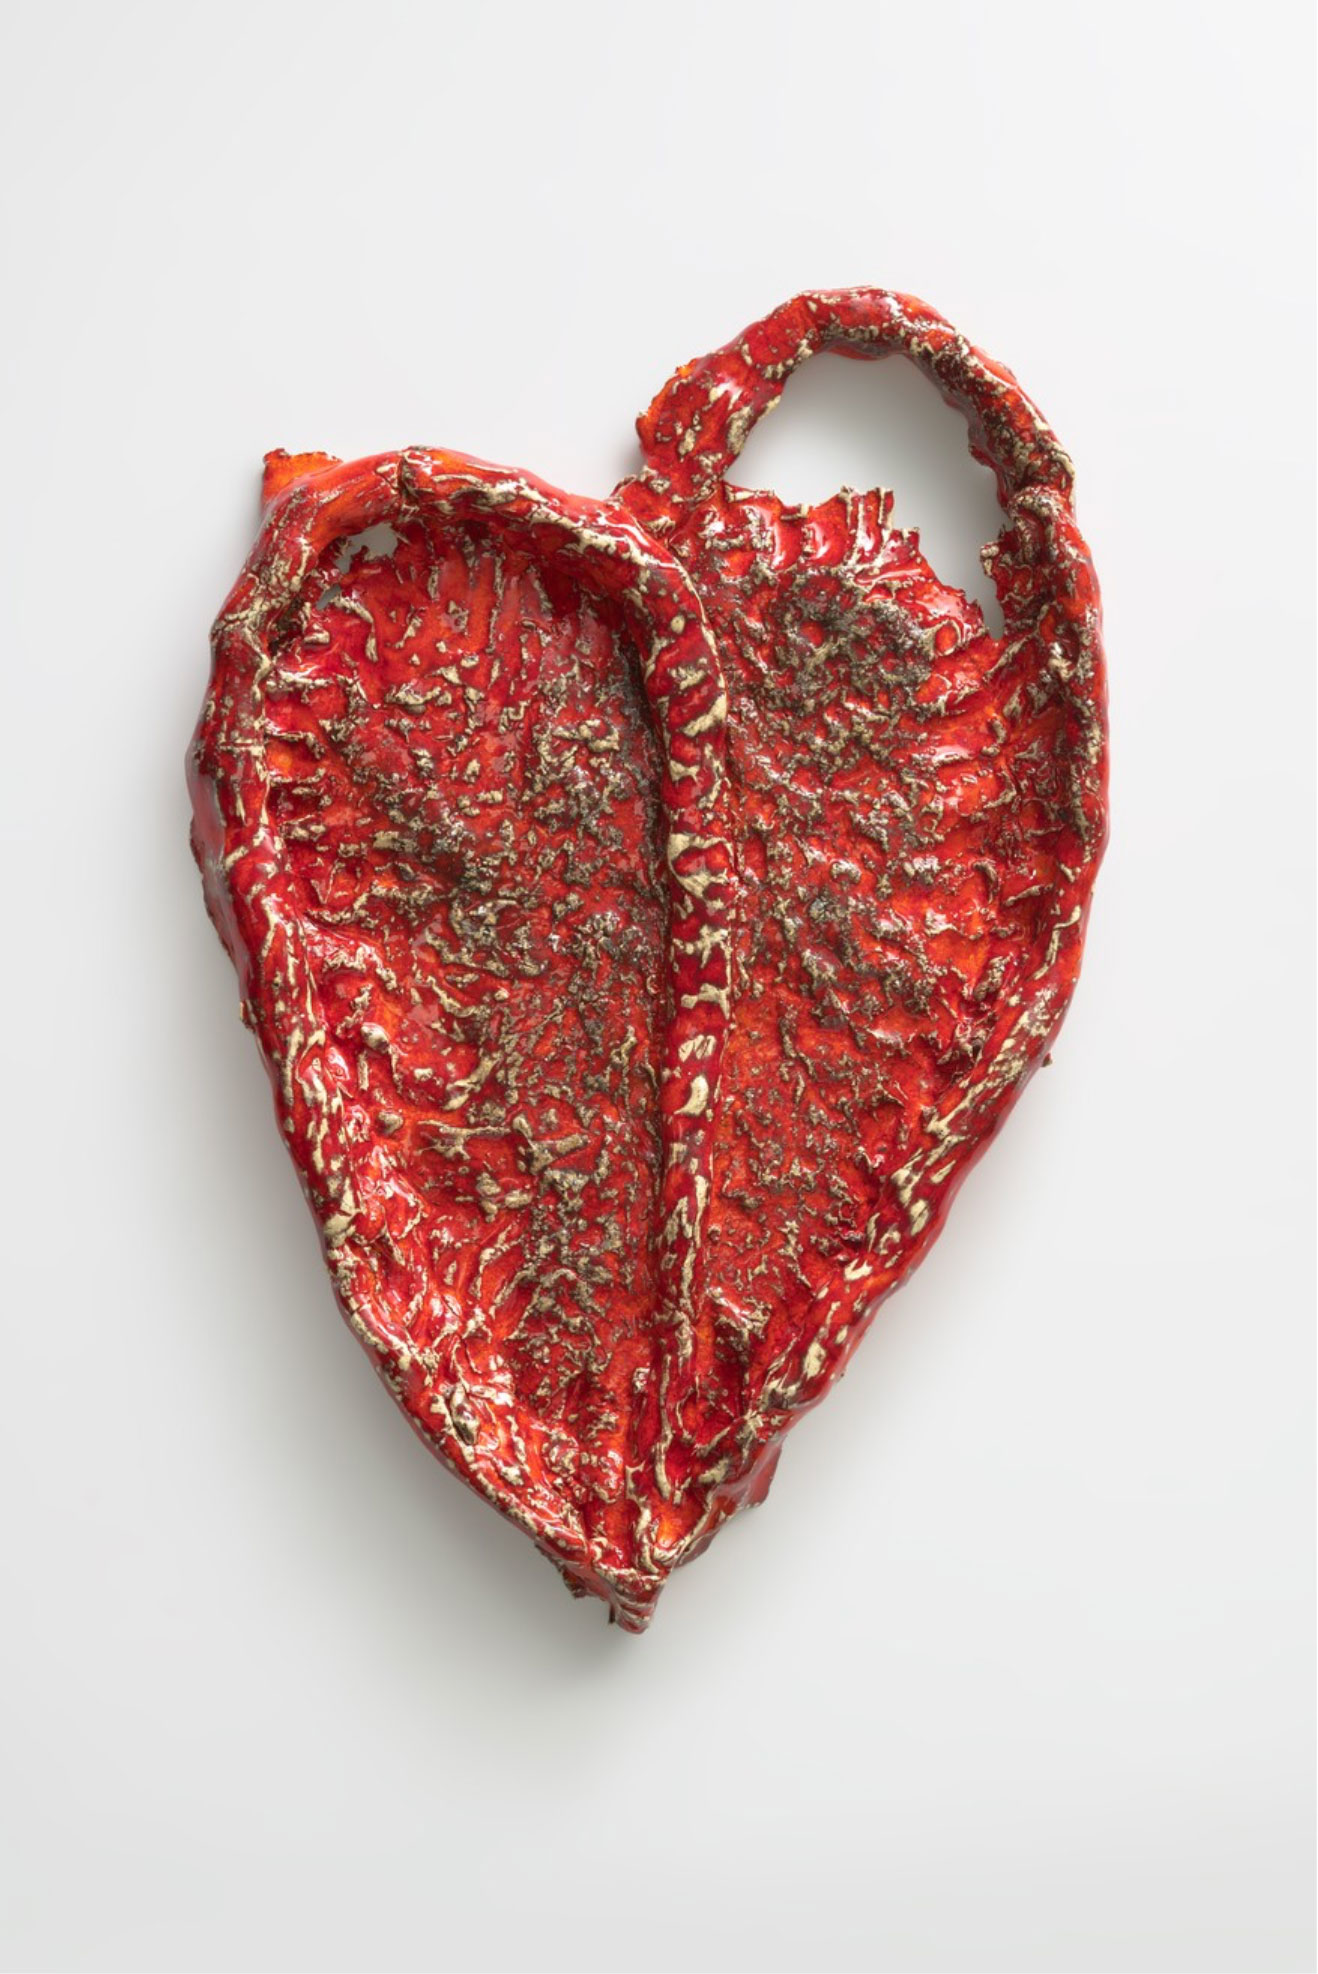 Heart 2018 Sterling Ruby   Ceramic, 52.1 x 35.6 x 5.1 cm